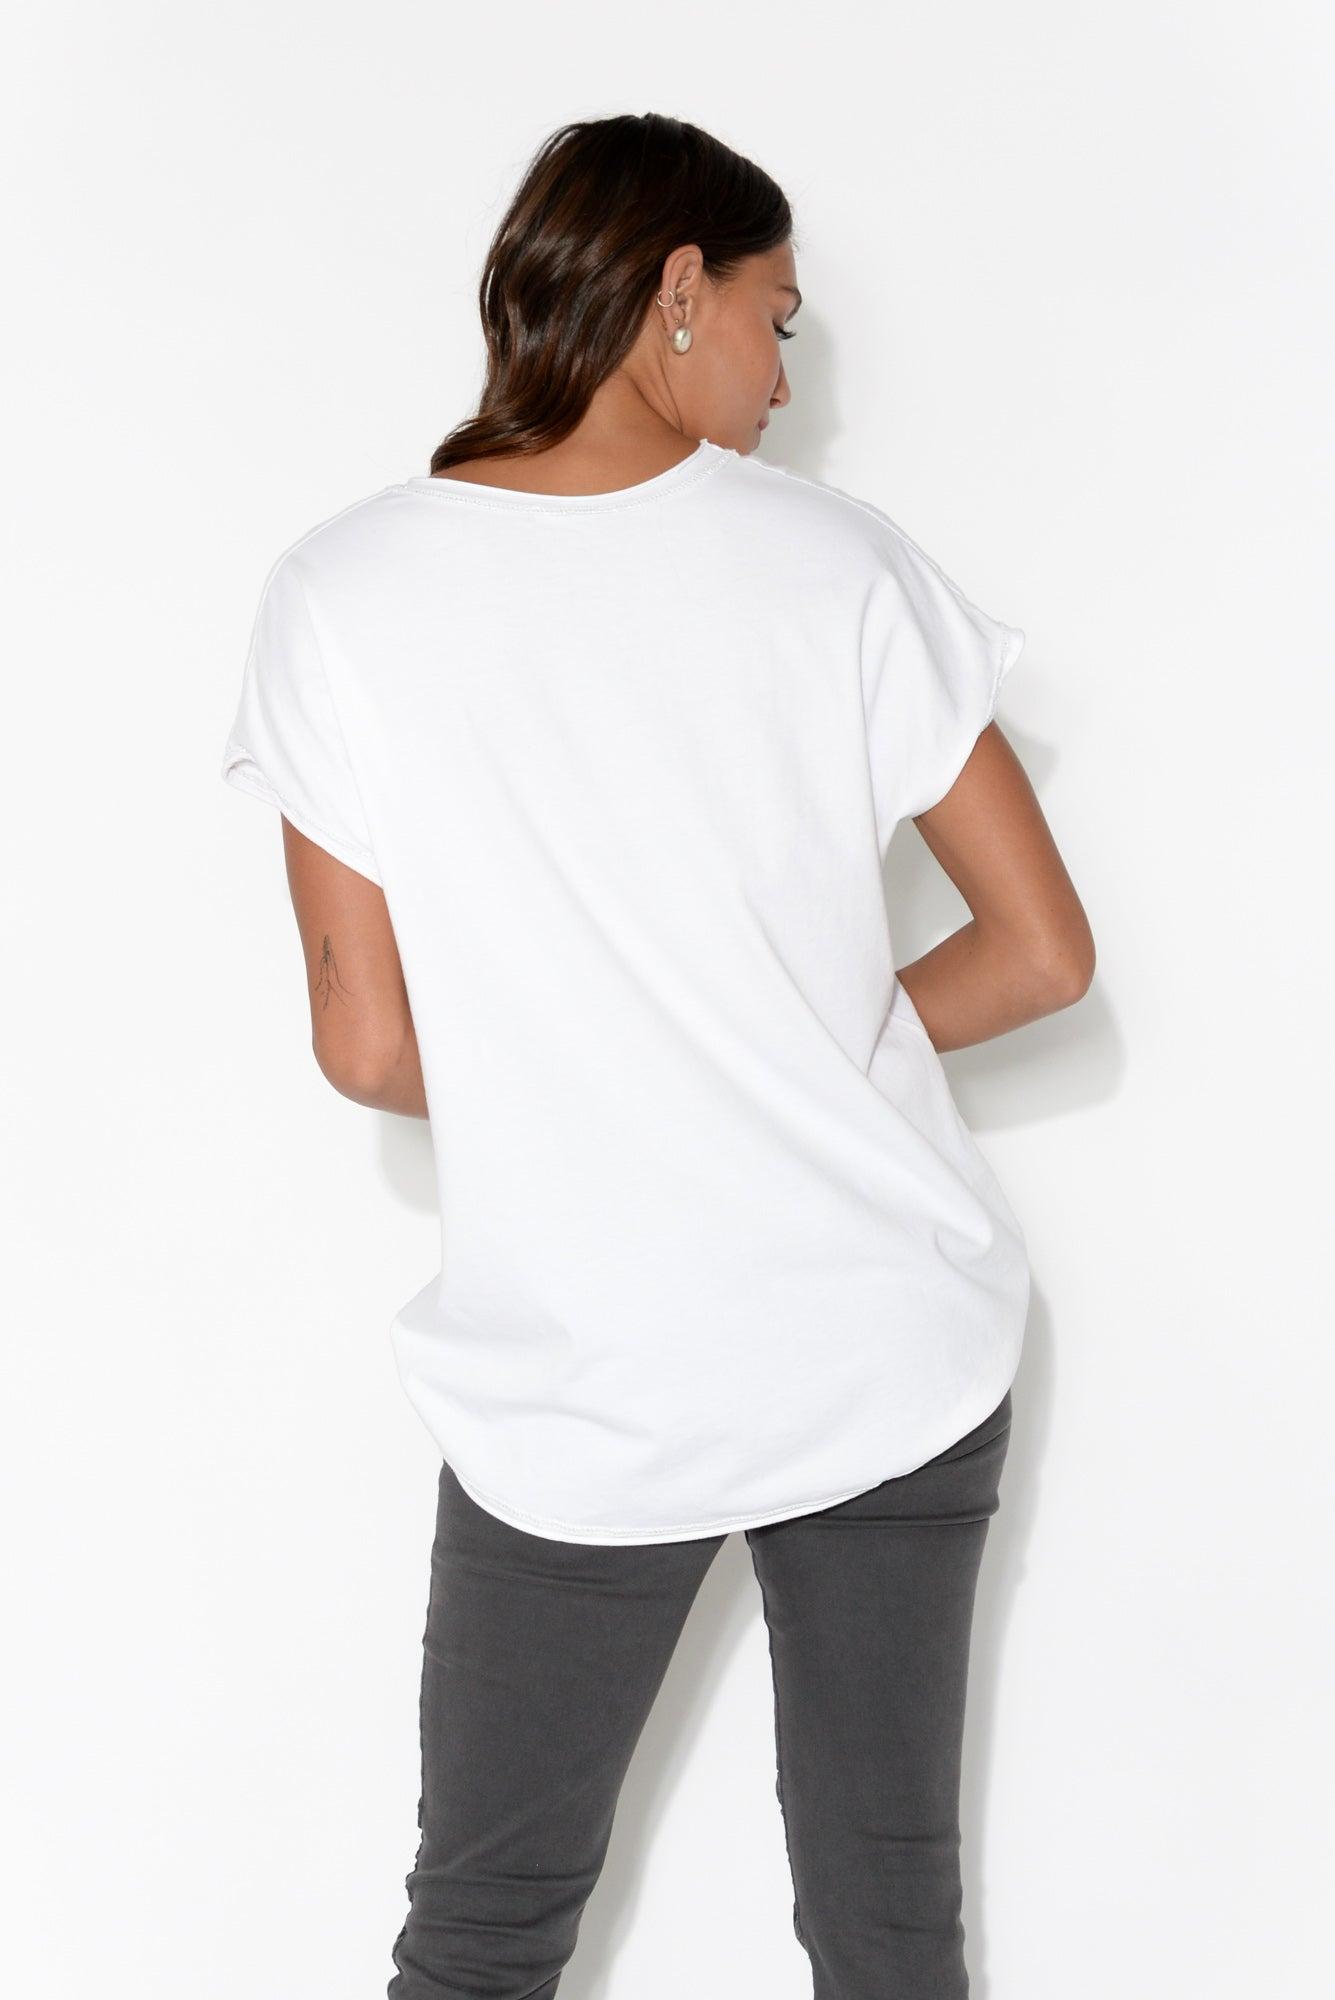 Kailana White Cotton Linen Star Tee